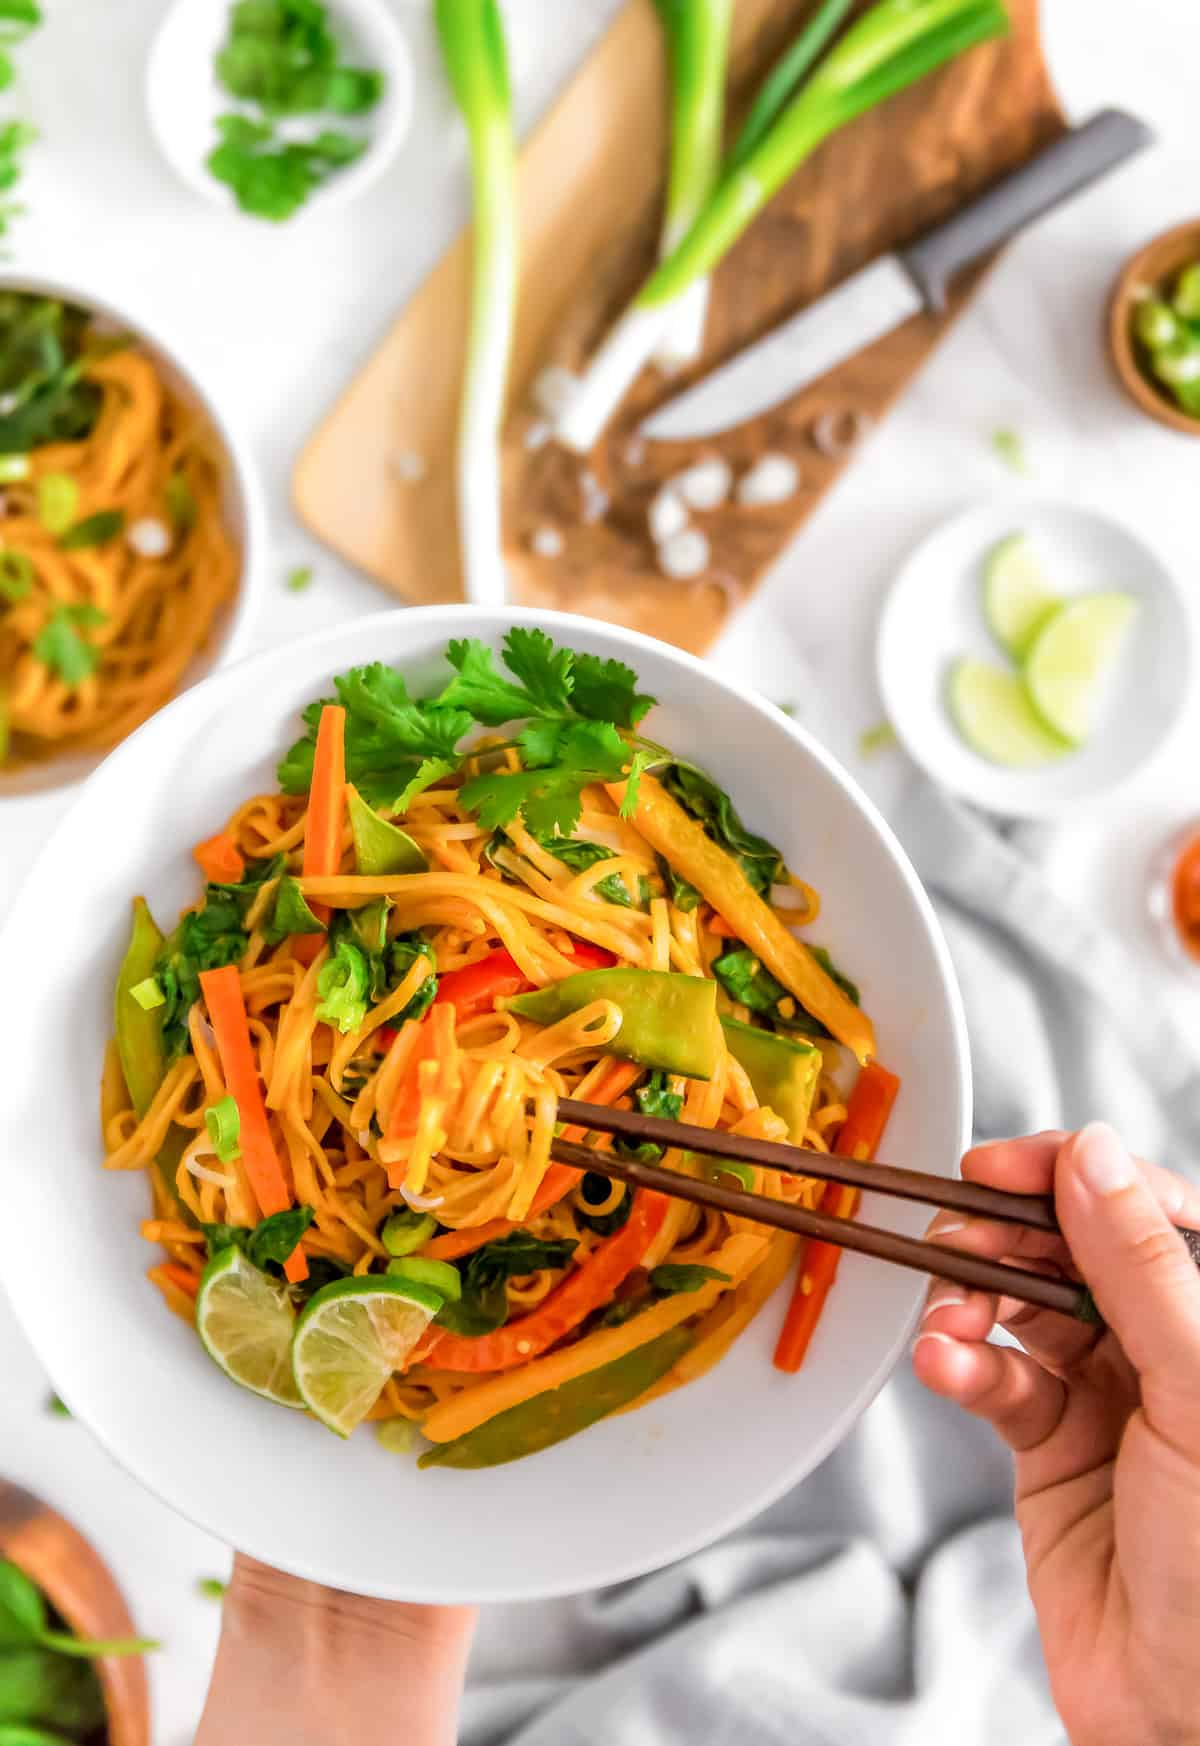 Fast and Easy Curry Noodles, vegan curry, vegan noodles, vegan dinner, plant based, vegan, vegetarian, whole food plant based, gluten free, recipe, wfpb, healthy, healthy vegan, oil free, no refined sugar, no oil, refined sugar free, dairy free, noodles, curry, veggies, dinner, fast recipe, easy recipe